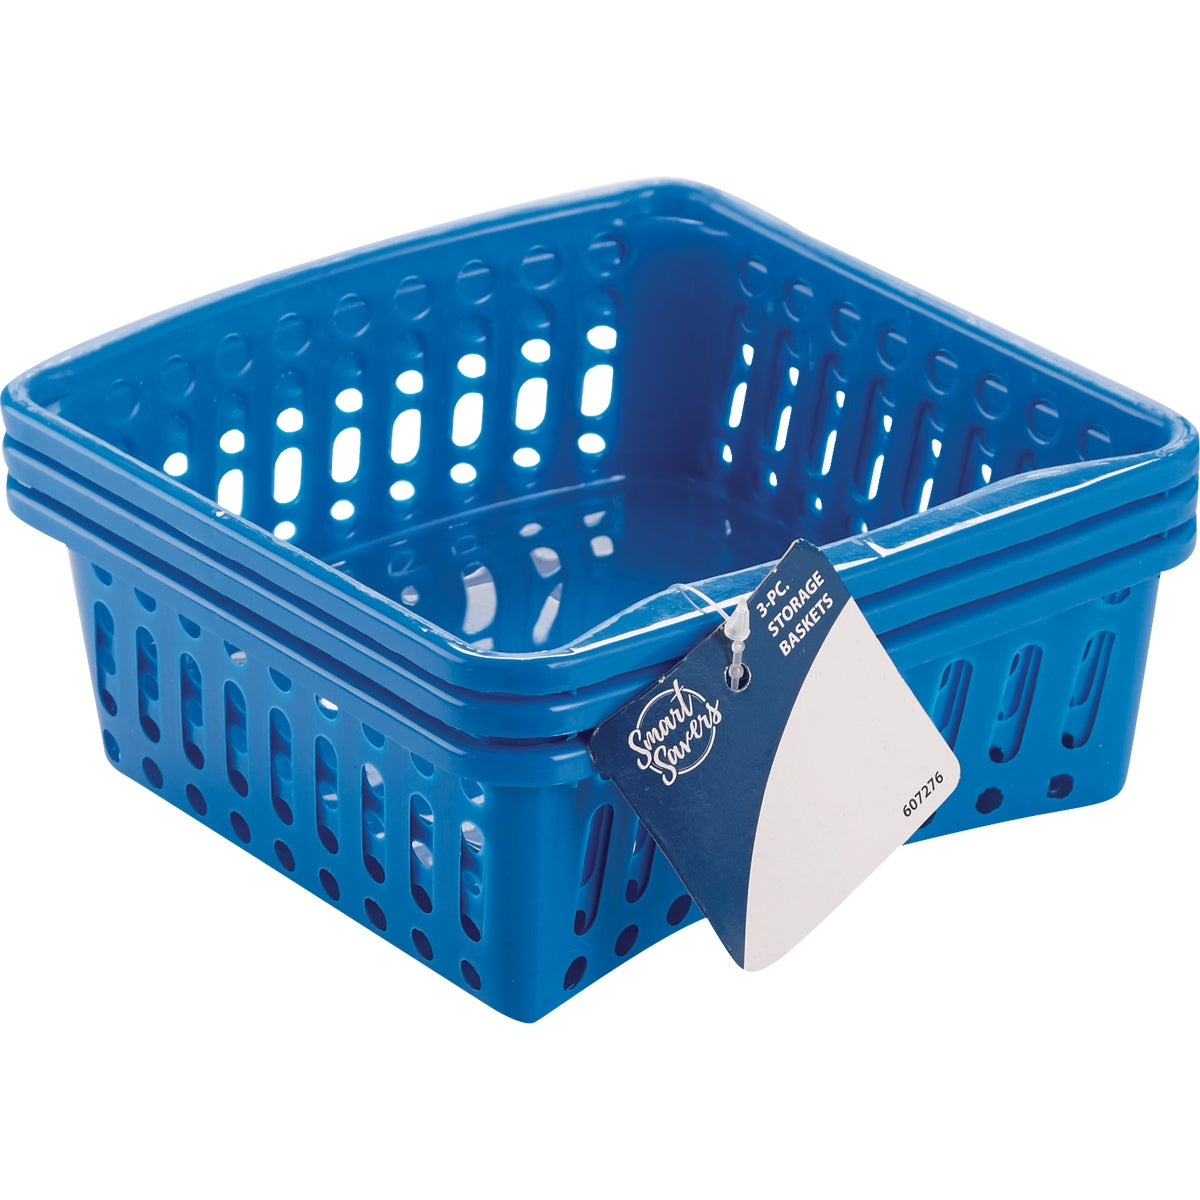 3PC STORAGE BASKETS